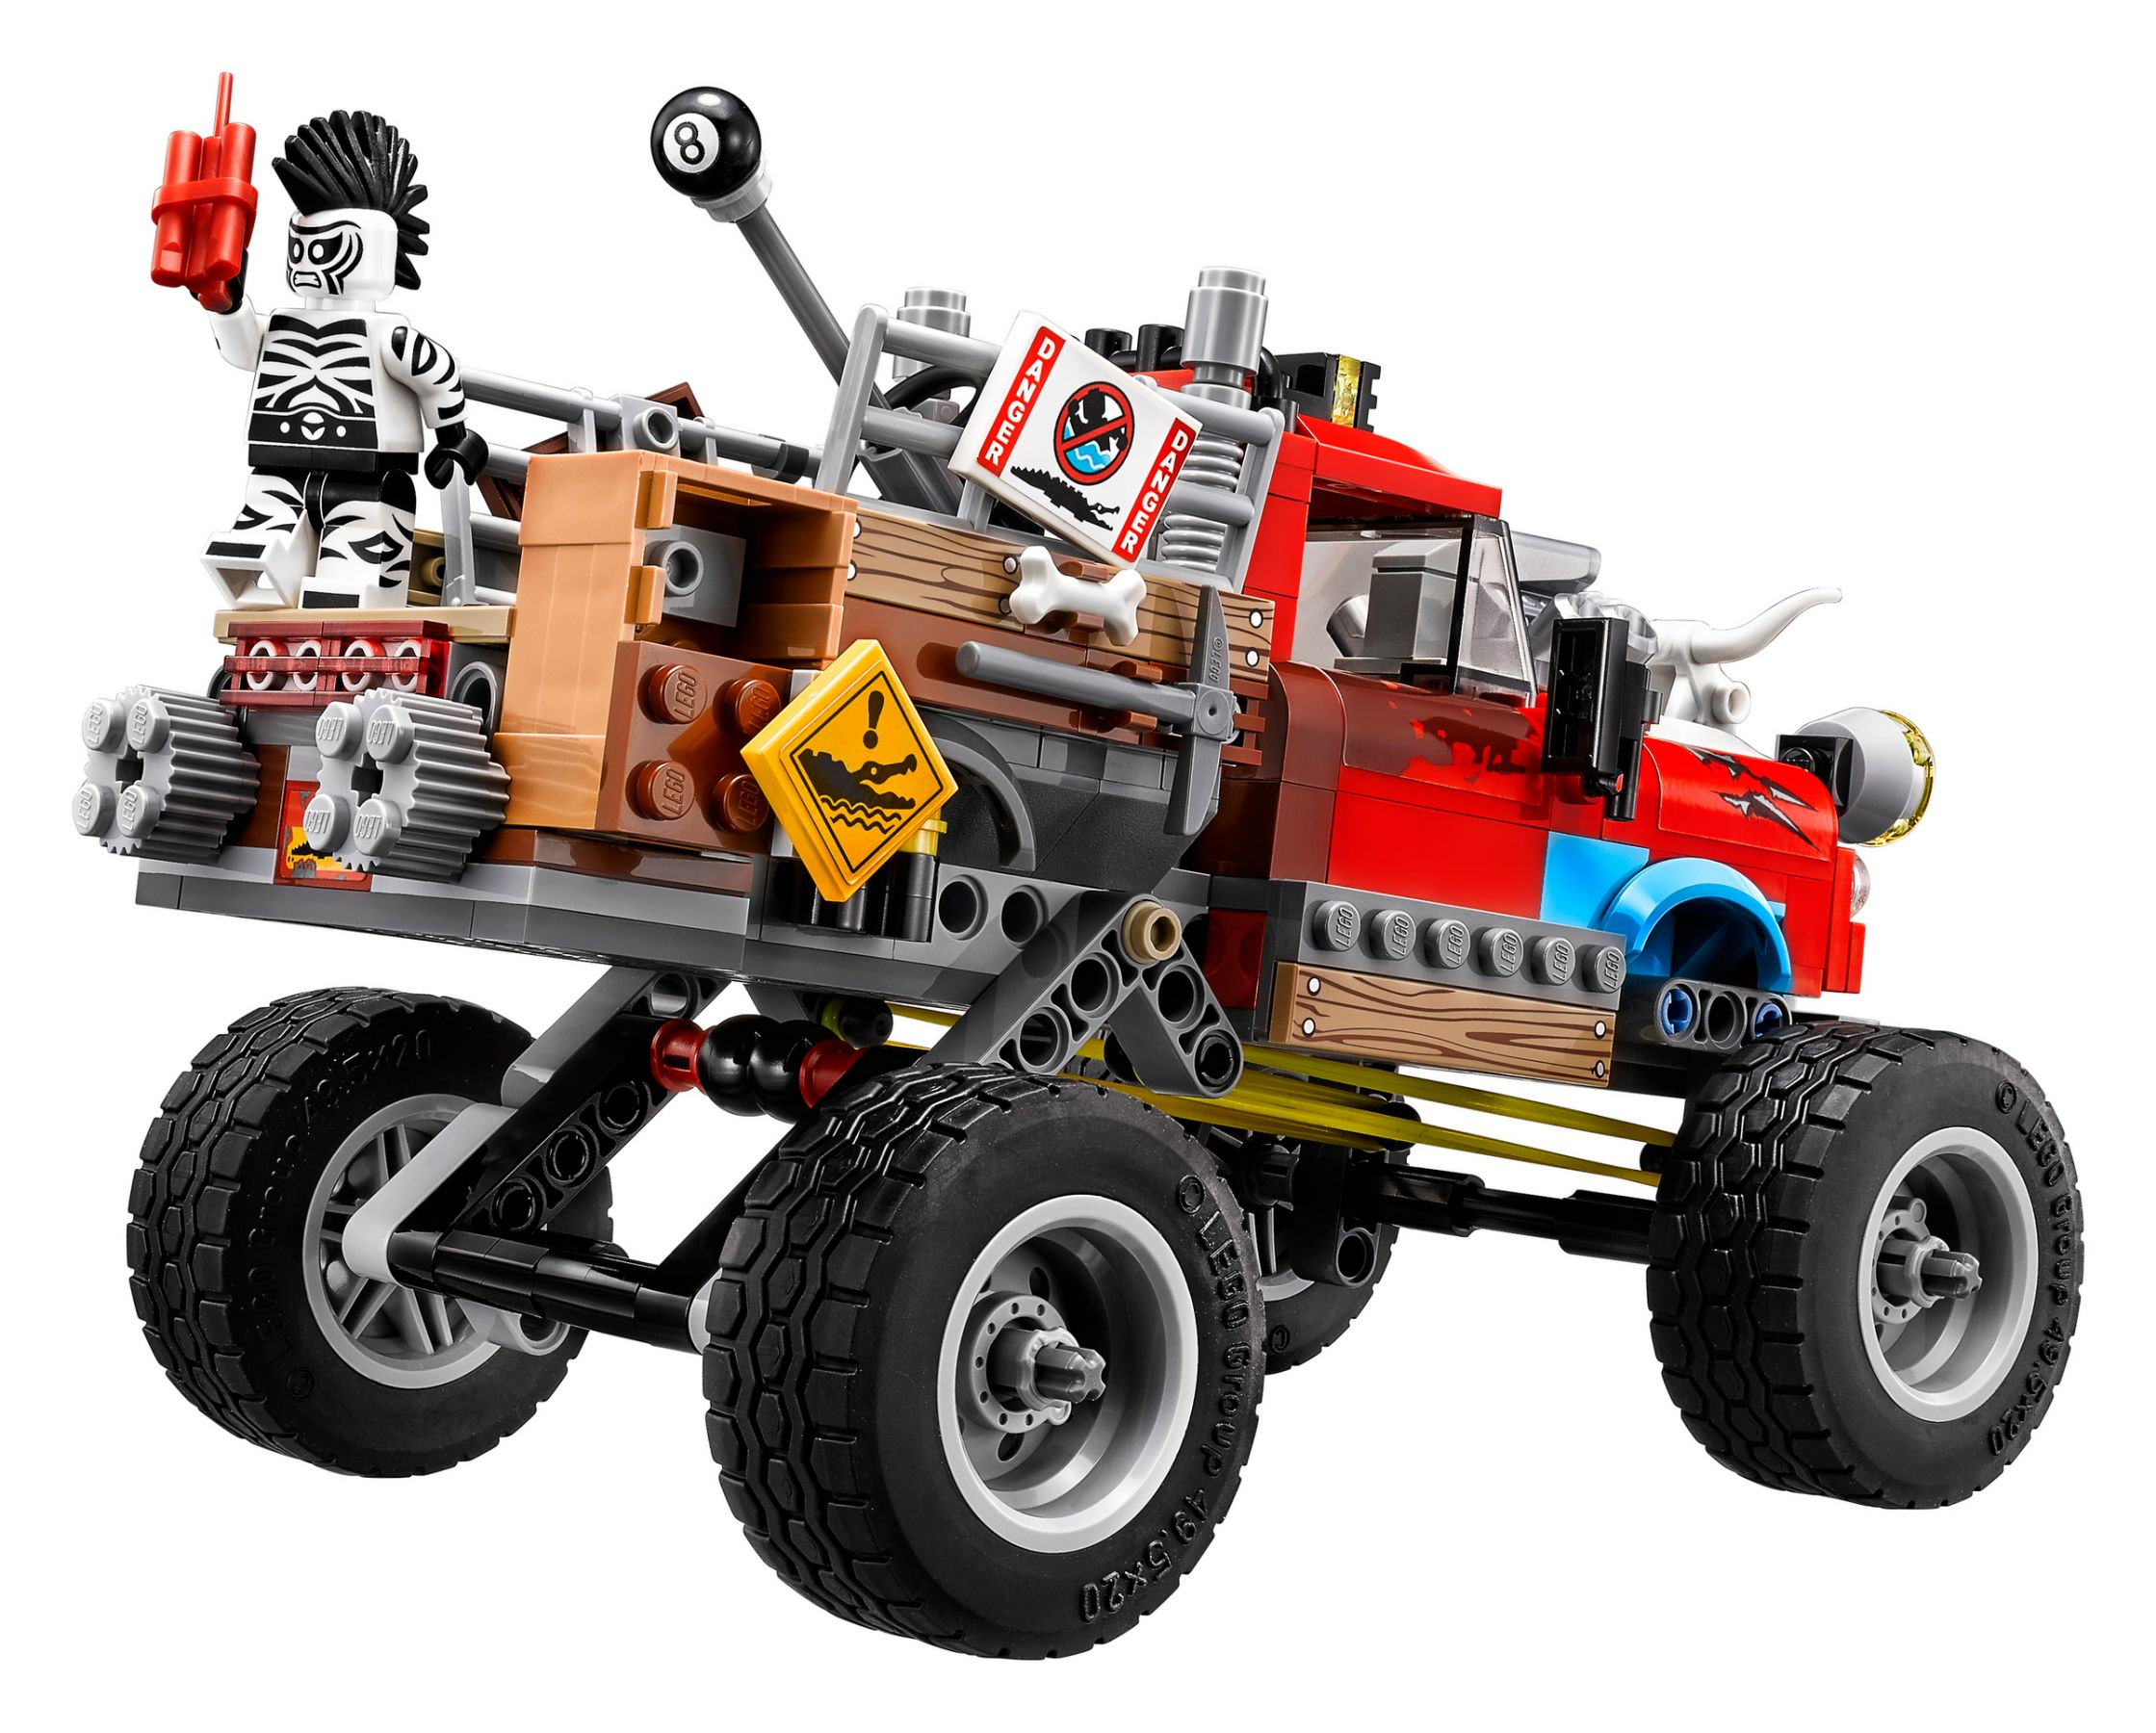 LEGO The LEGO Batman Movie 70907 Killer Crocs Truck LEGO_70907_alt4.jpg